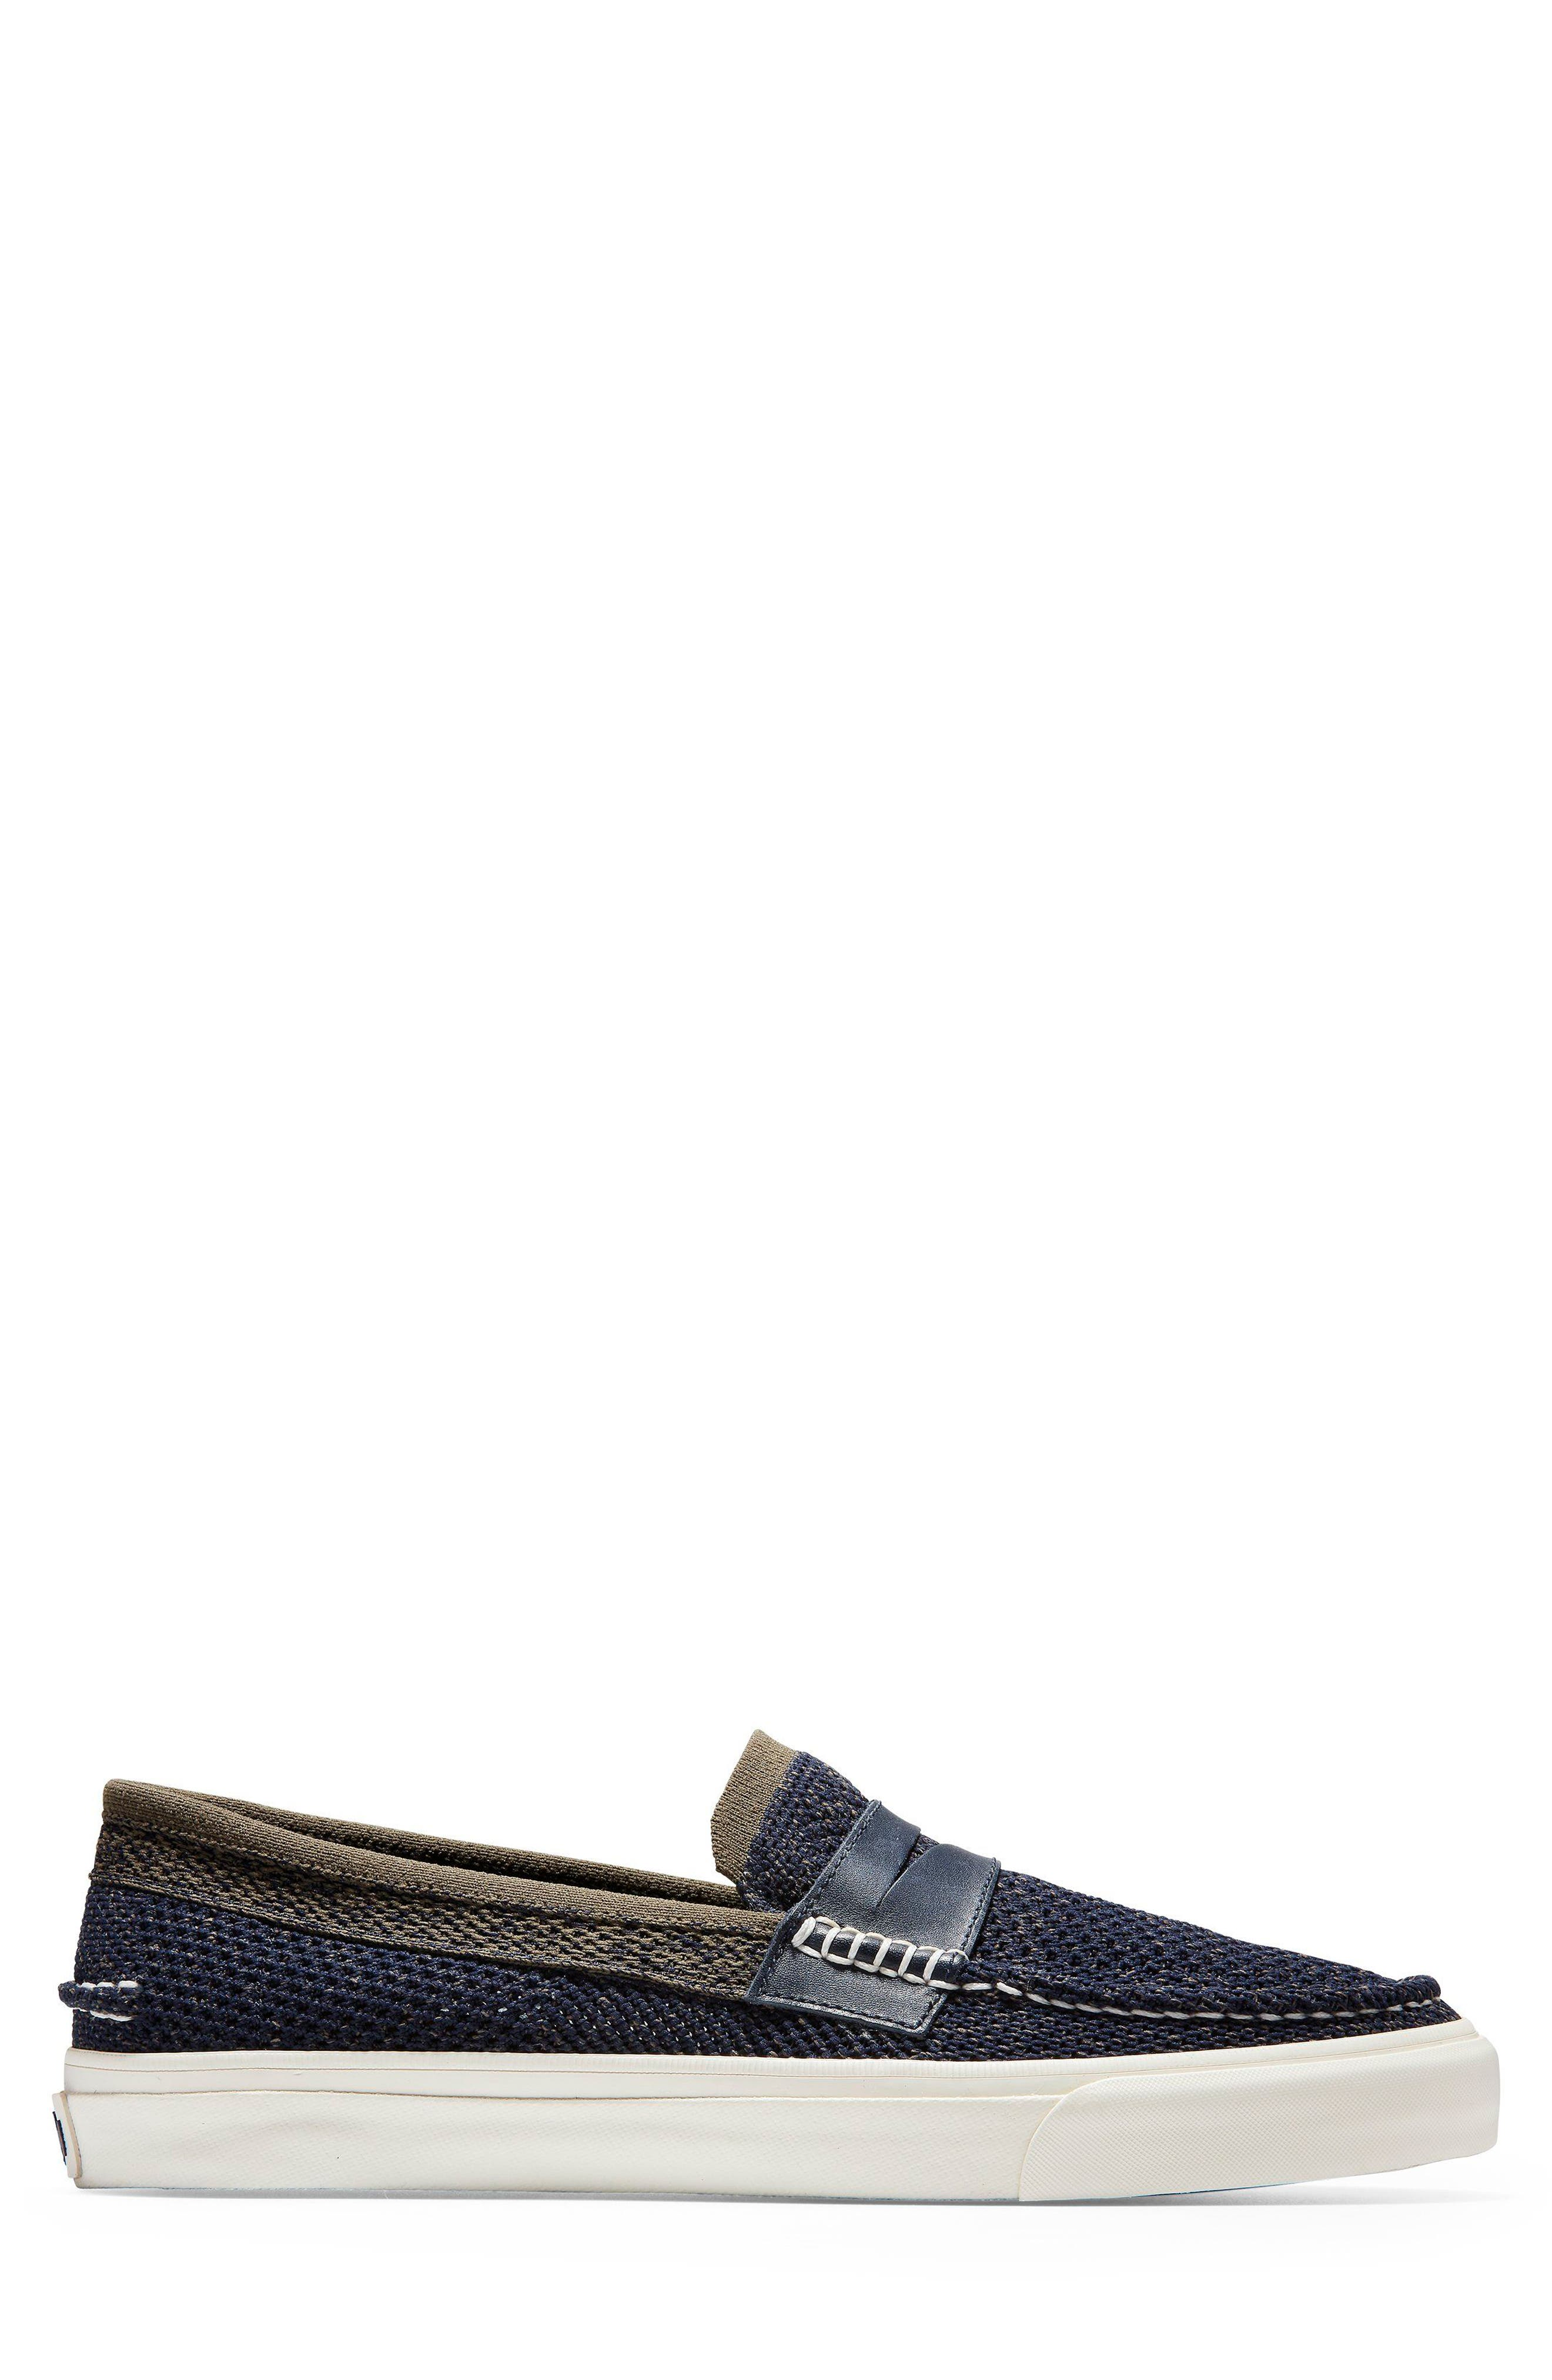 Pinch Stitch LX Stitchlite<sup>™</sup> Penny Loafer,                             Alternate thumbnail 3, color,                             NAVY/ MOREL